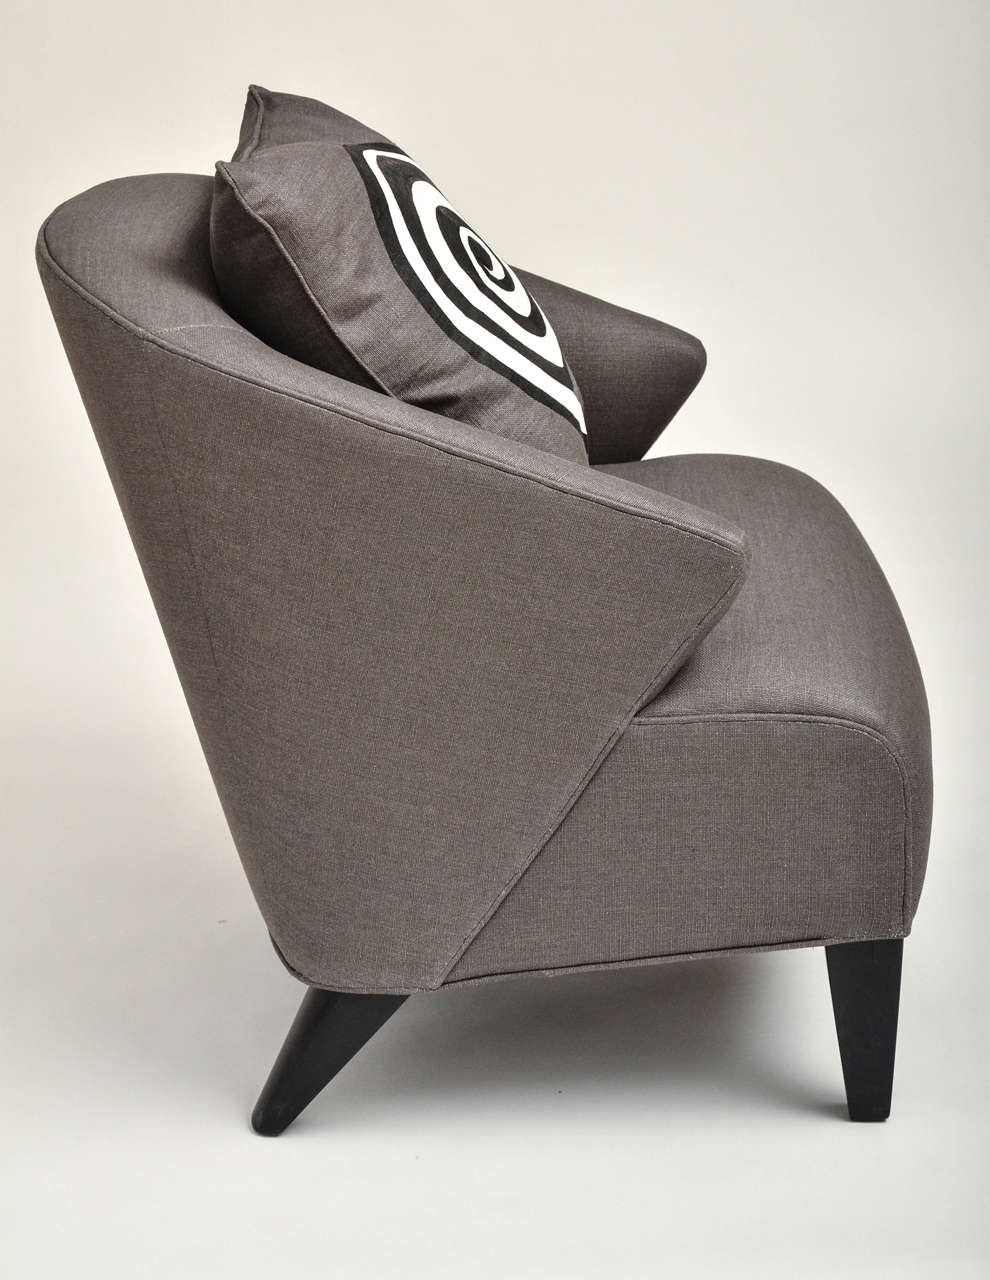 20th Century Mid-Century Modern Upholstered Chair with Hand-Painted Pillow For Sale